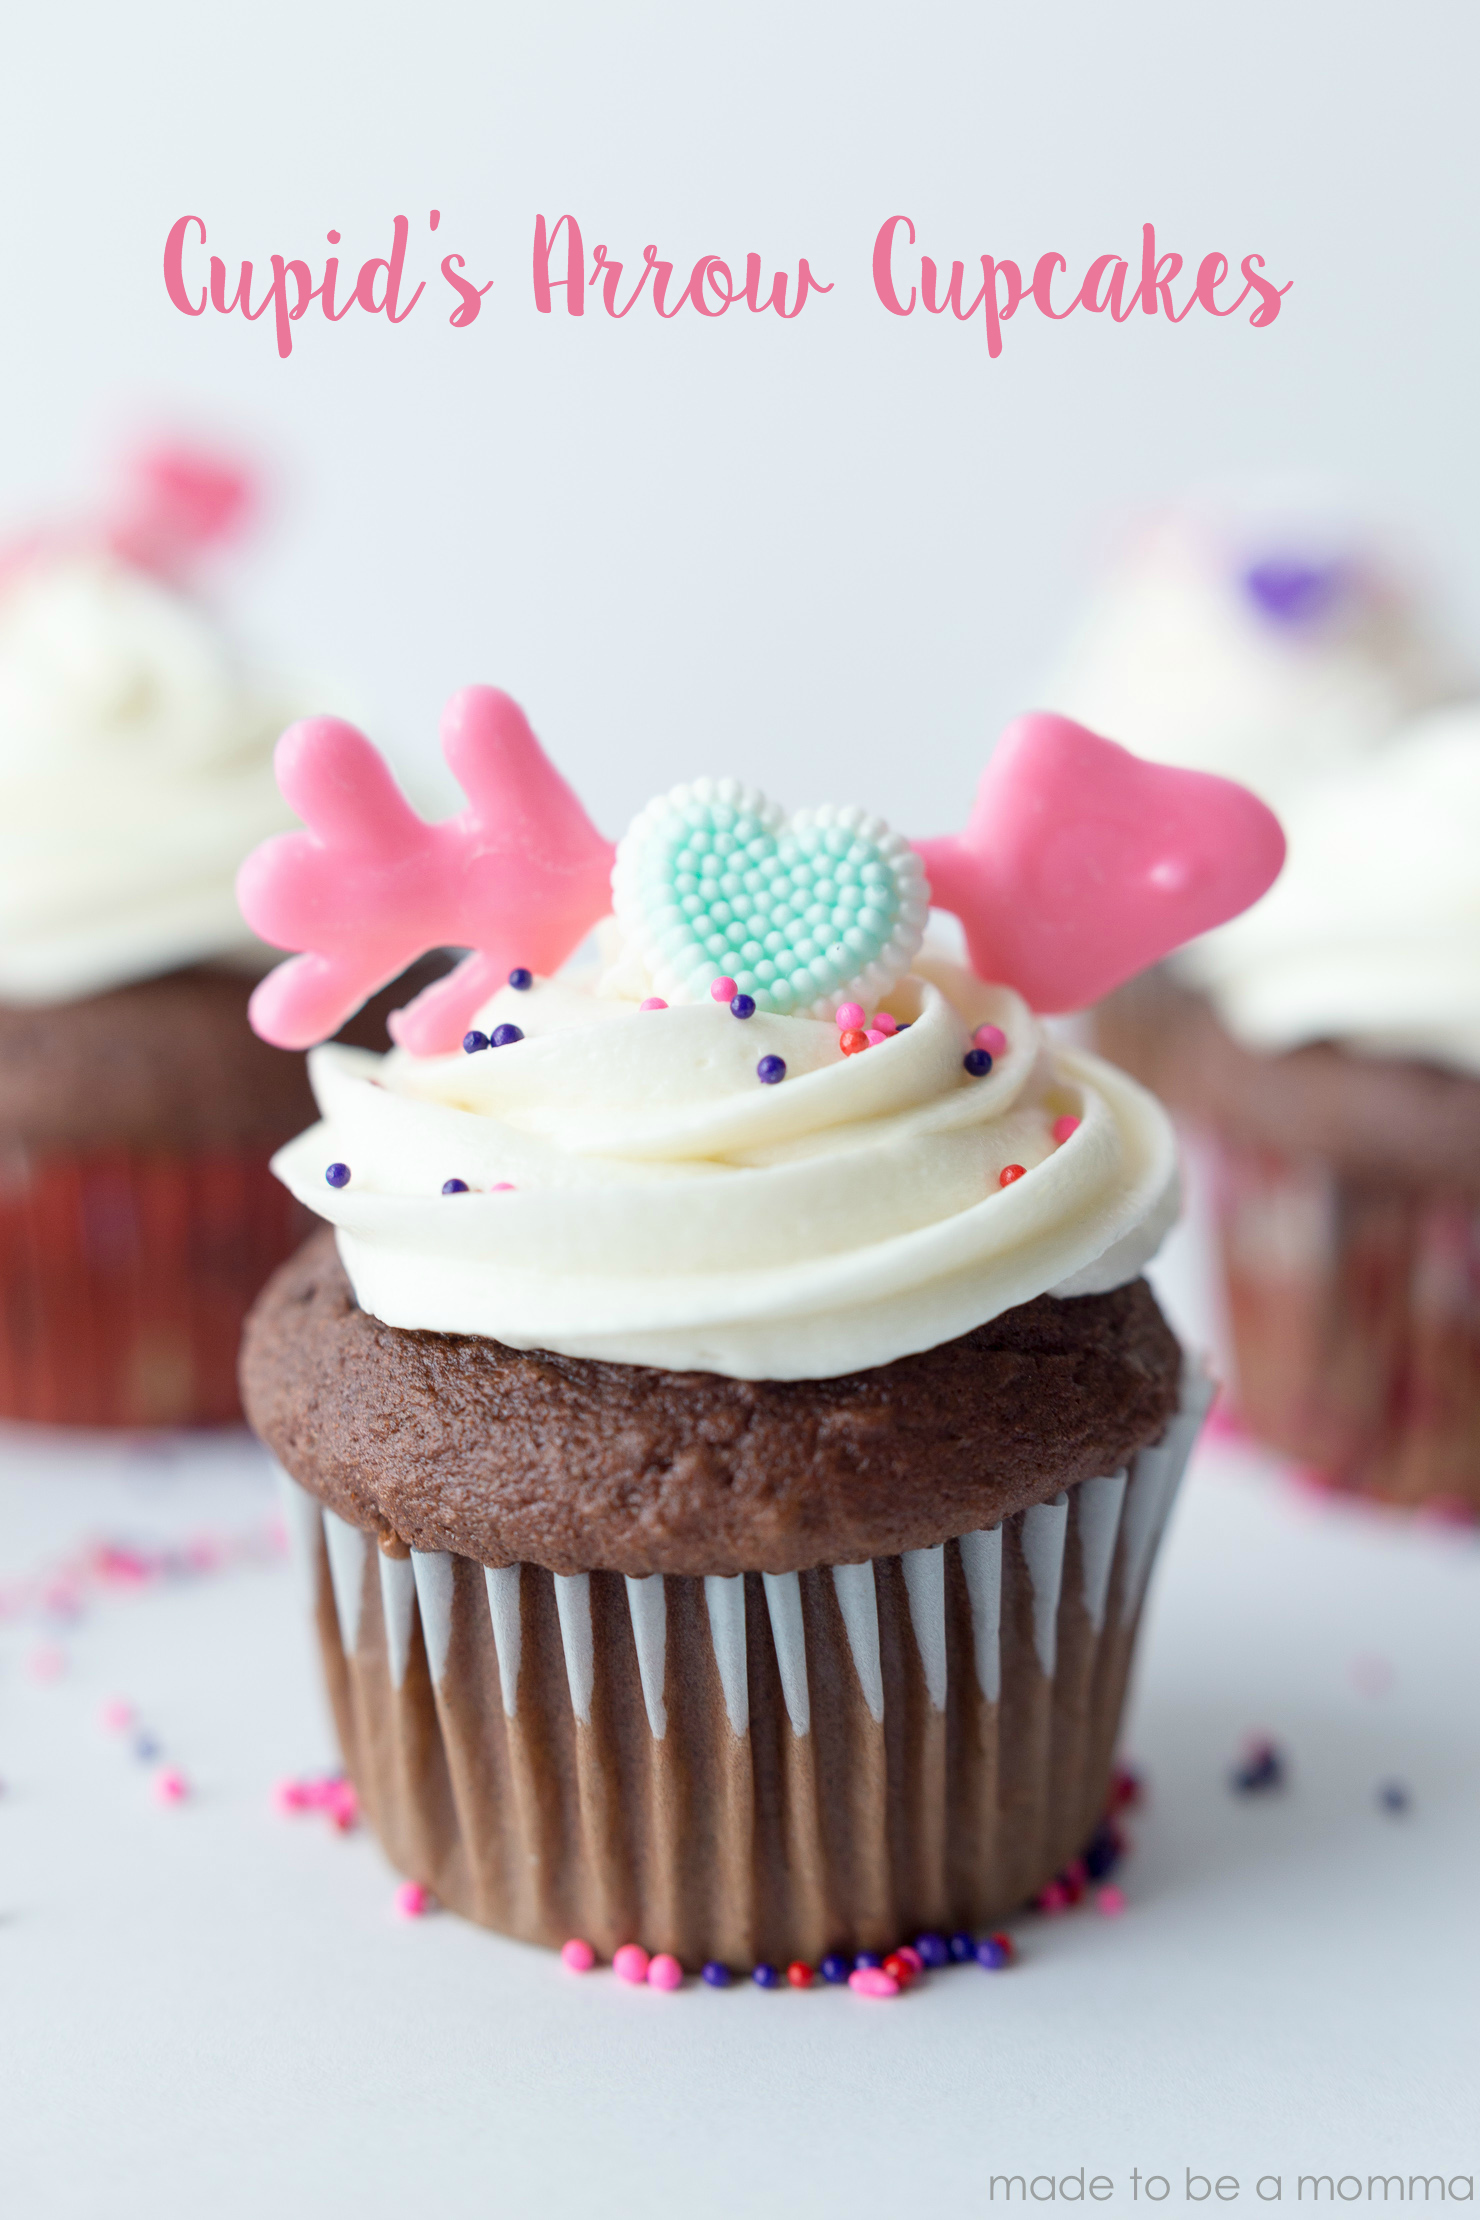 These Cupid's Arrow Cupcakes are a fun way to spread the love during this fun Valentine's Day Holiday.